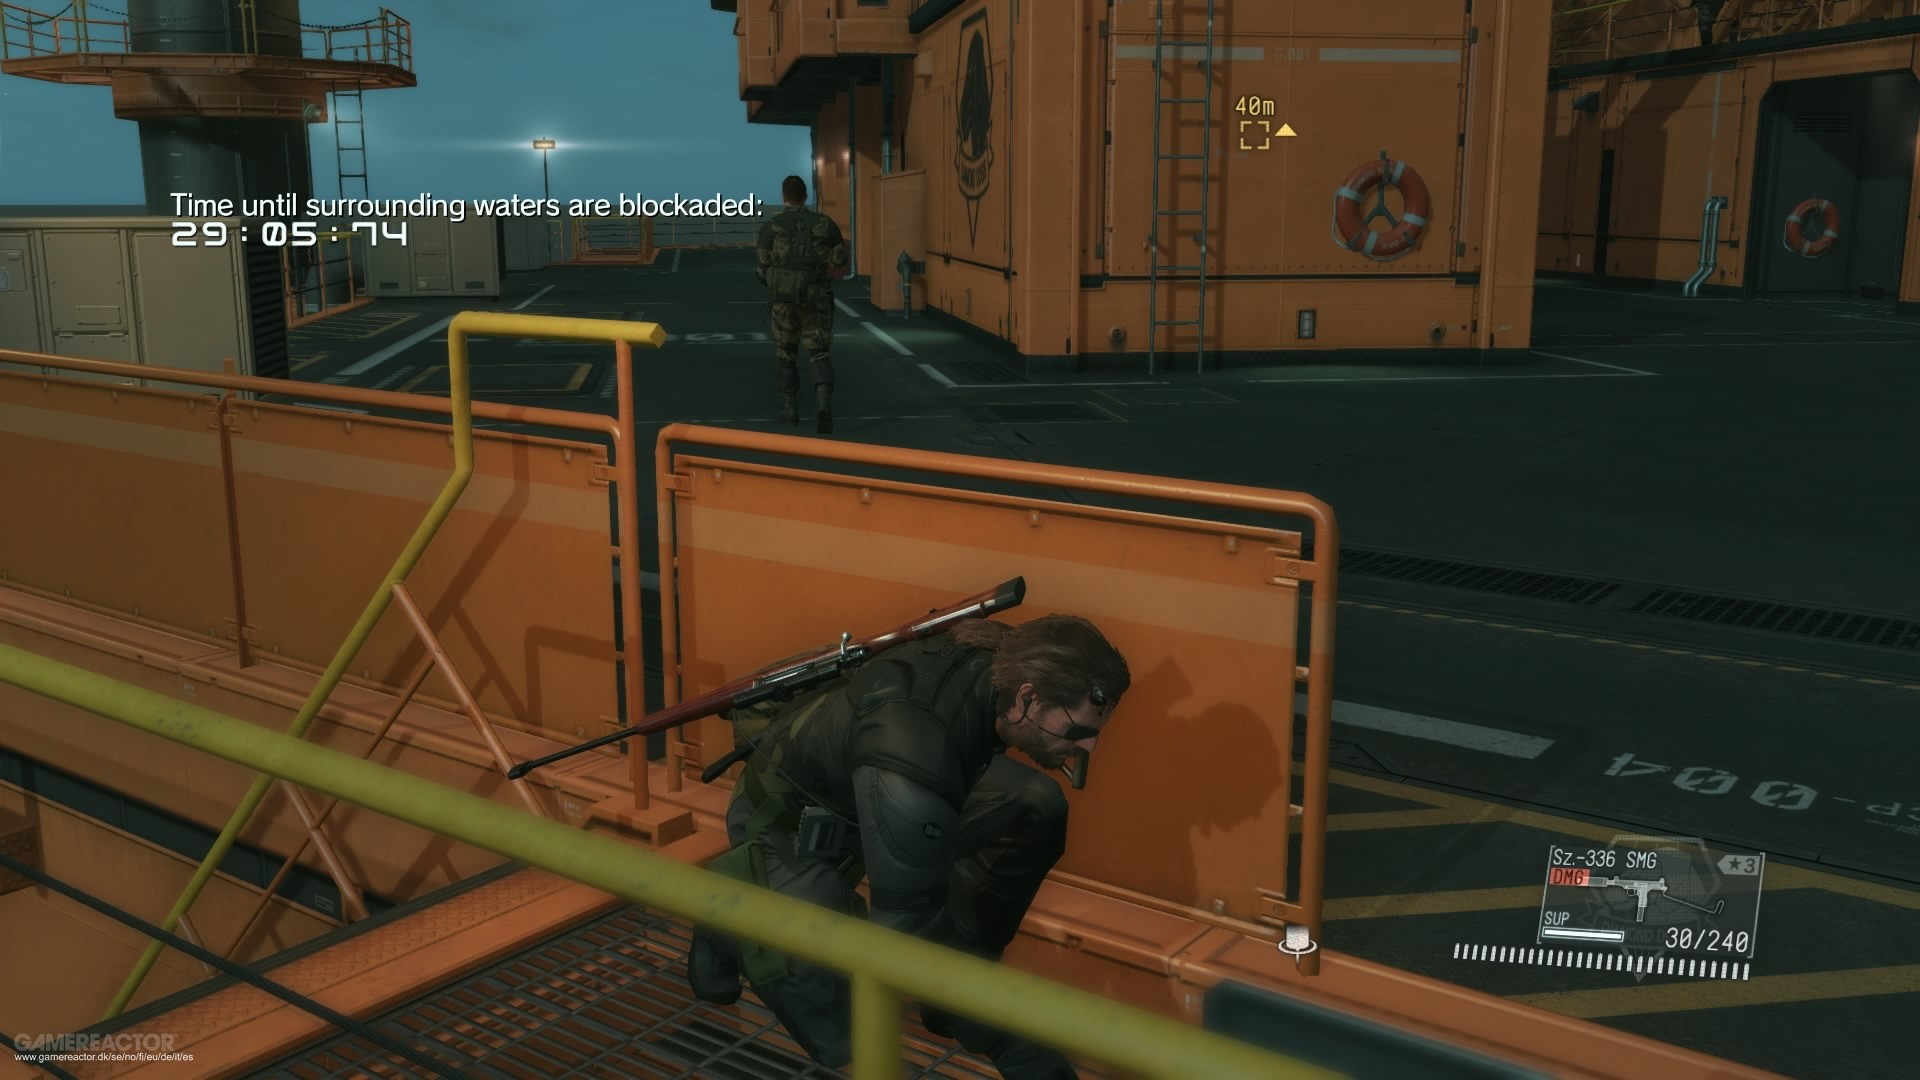 Bilder Zu Metal Gear Solid V The Phantom Pain 15 16 Game Ps4 Definitive Experience